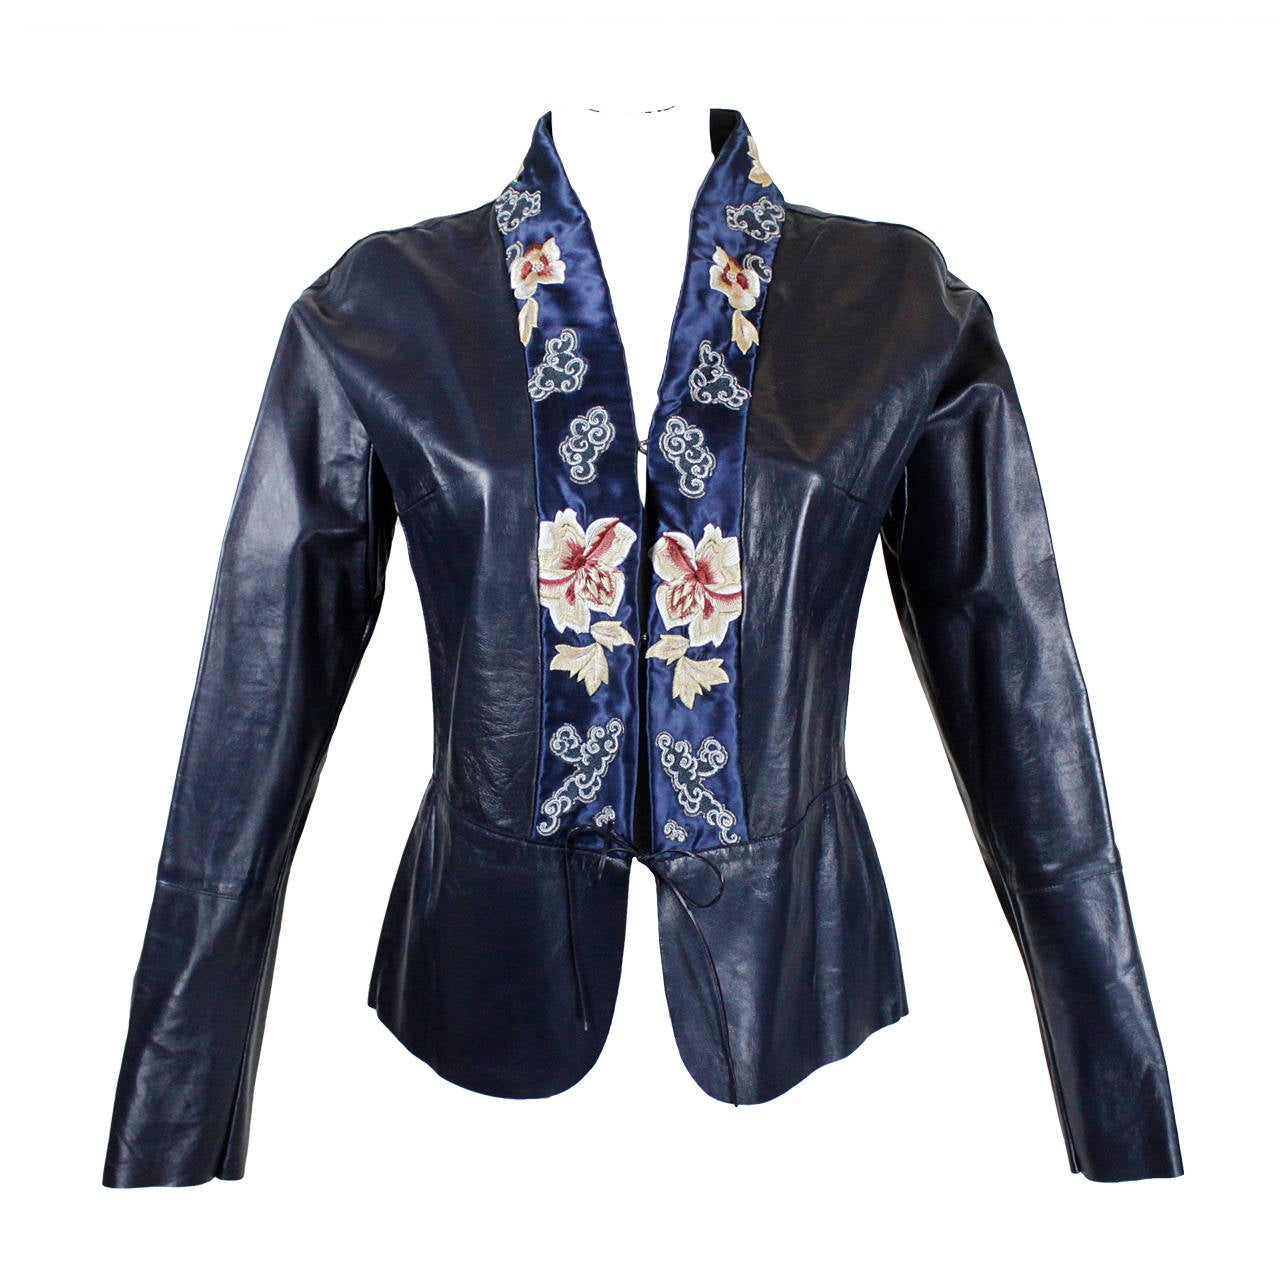 Blumarine Navy Leather Jacket with Japanese Inspired Embroidery For Sale